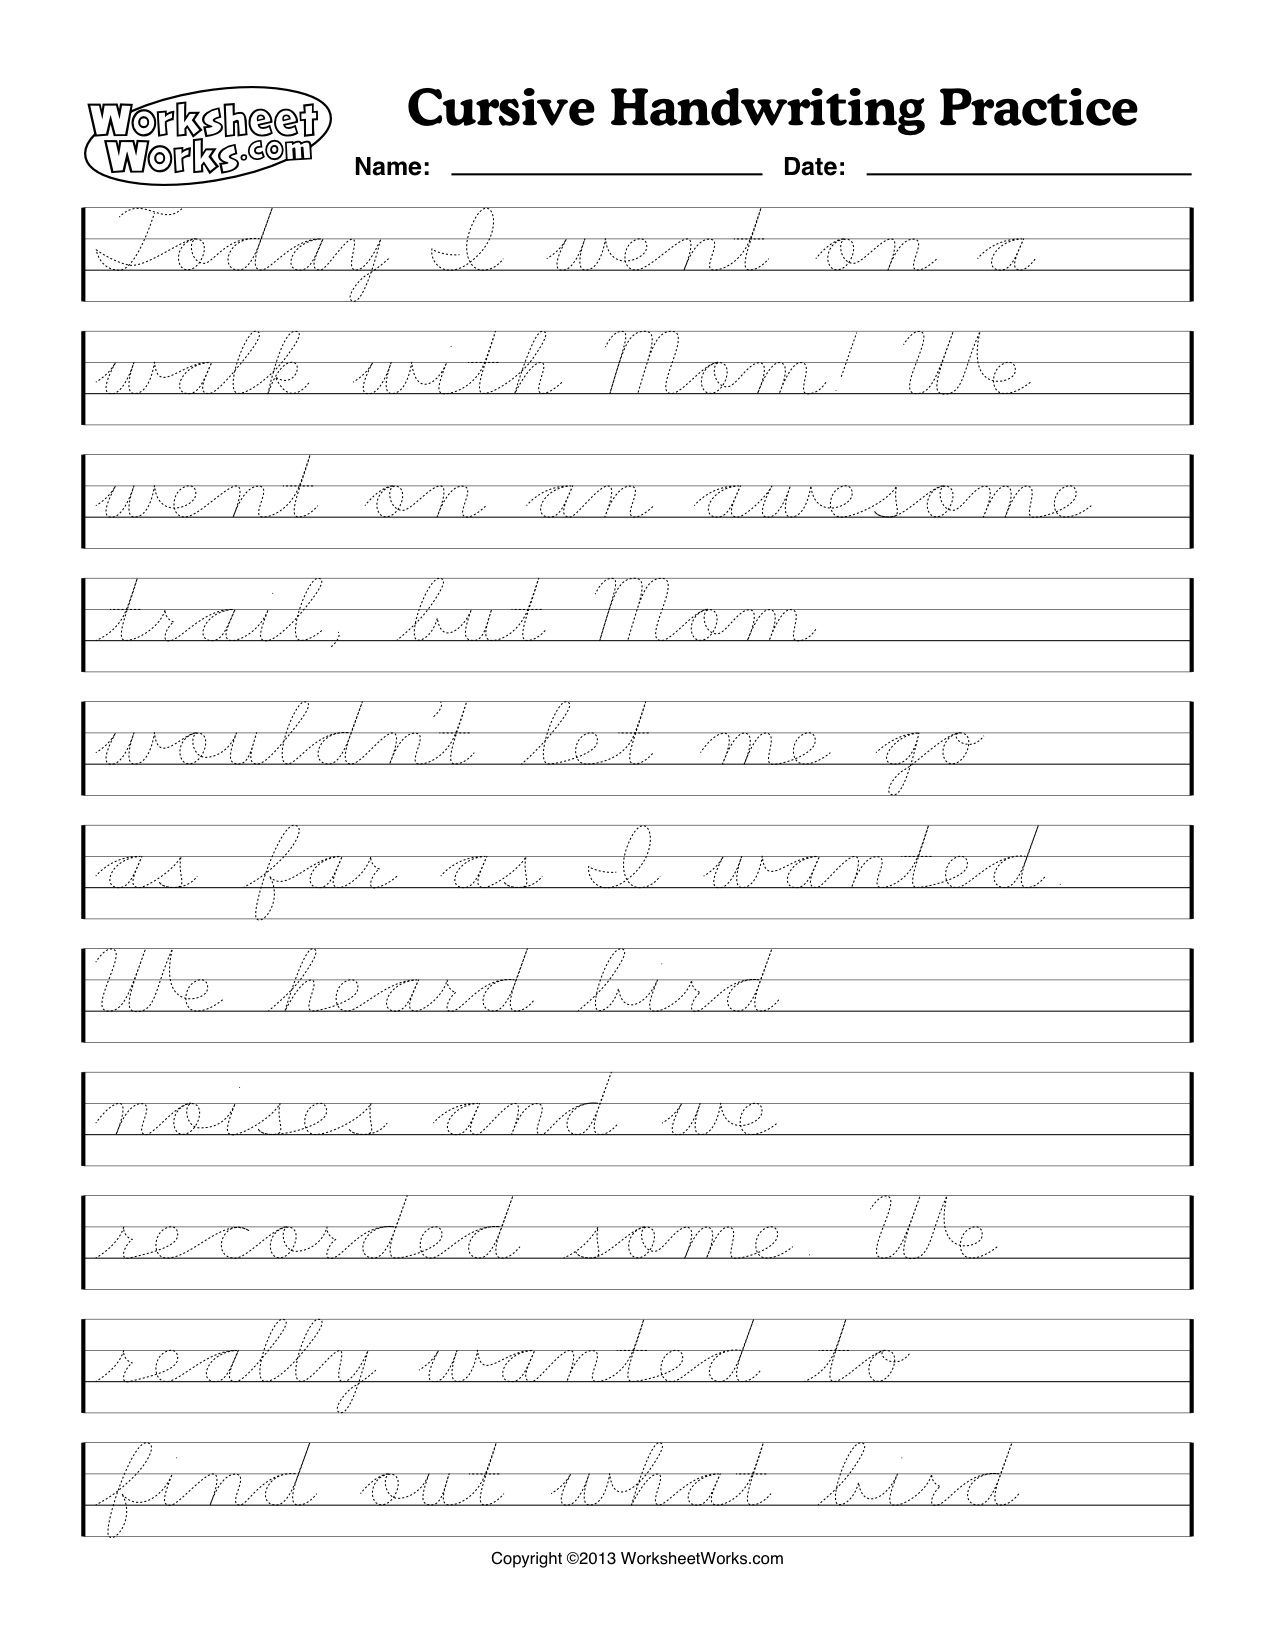 Worksheets Create Your Own Handwriting Worksheets cursive handwriting worksheets writing worksheet one word english pic 18